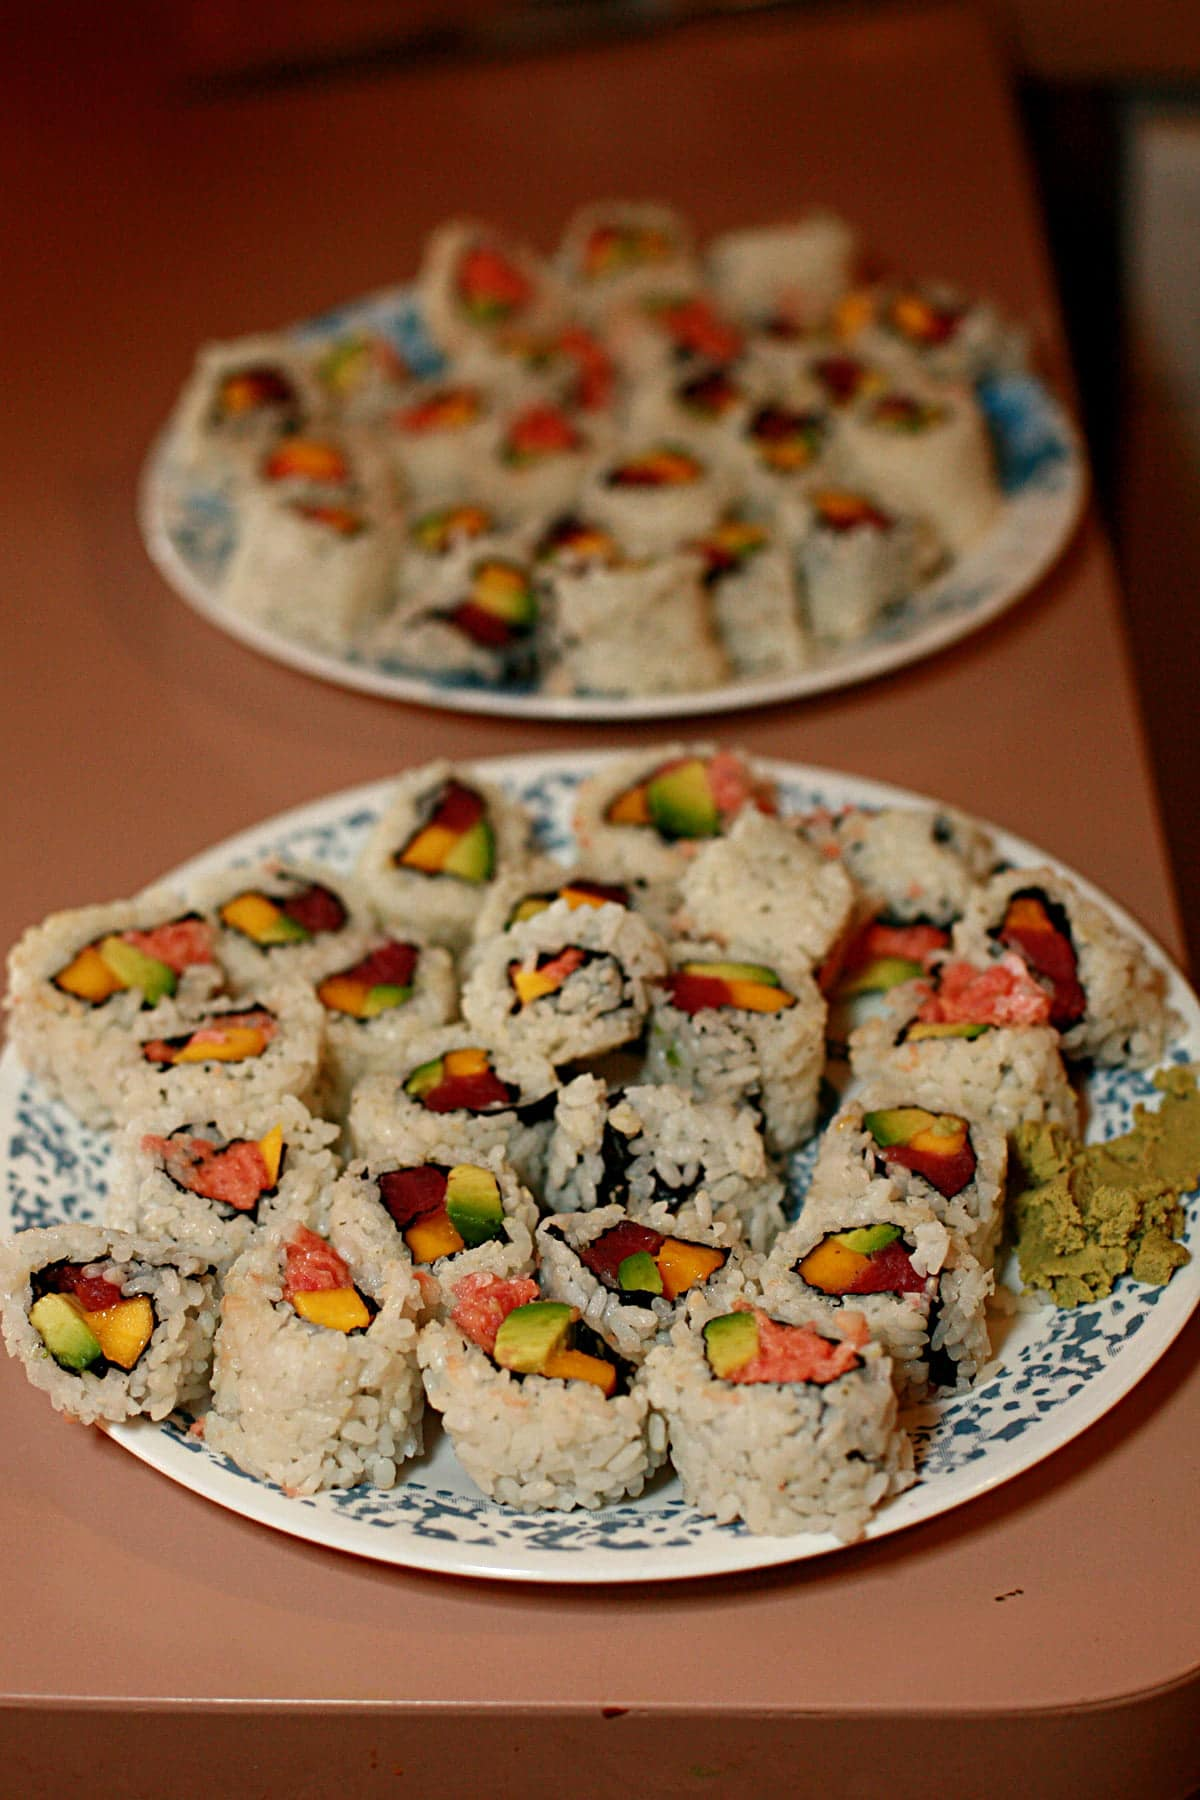 Two plates with dozens of pieces of DIY  sushi are shown on a pink countertop.